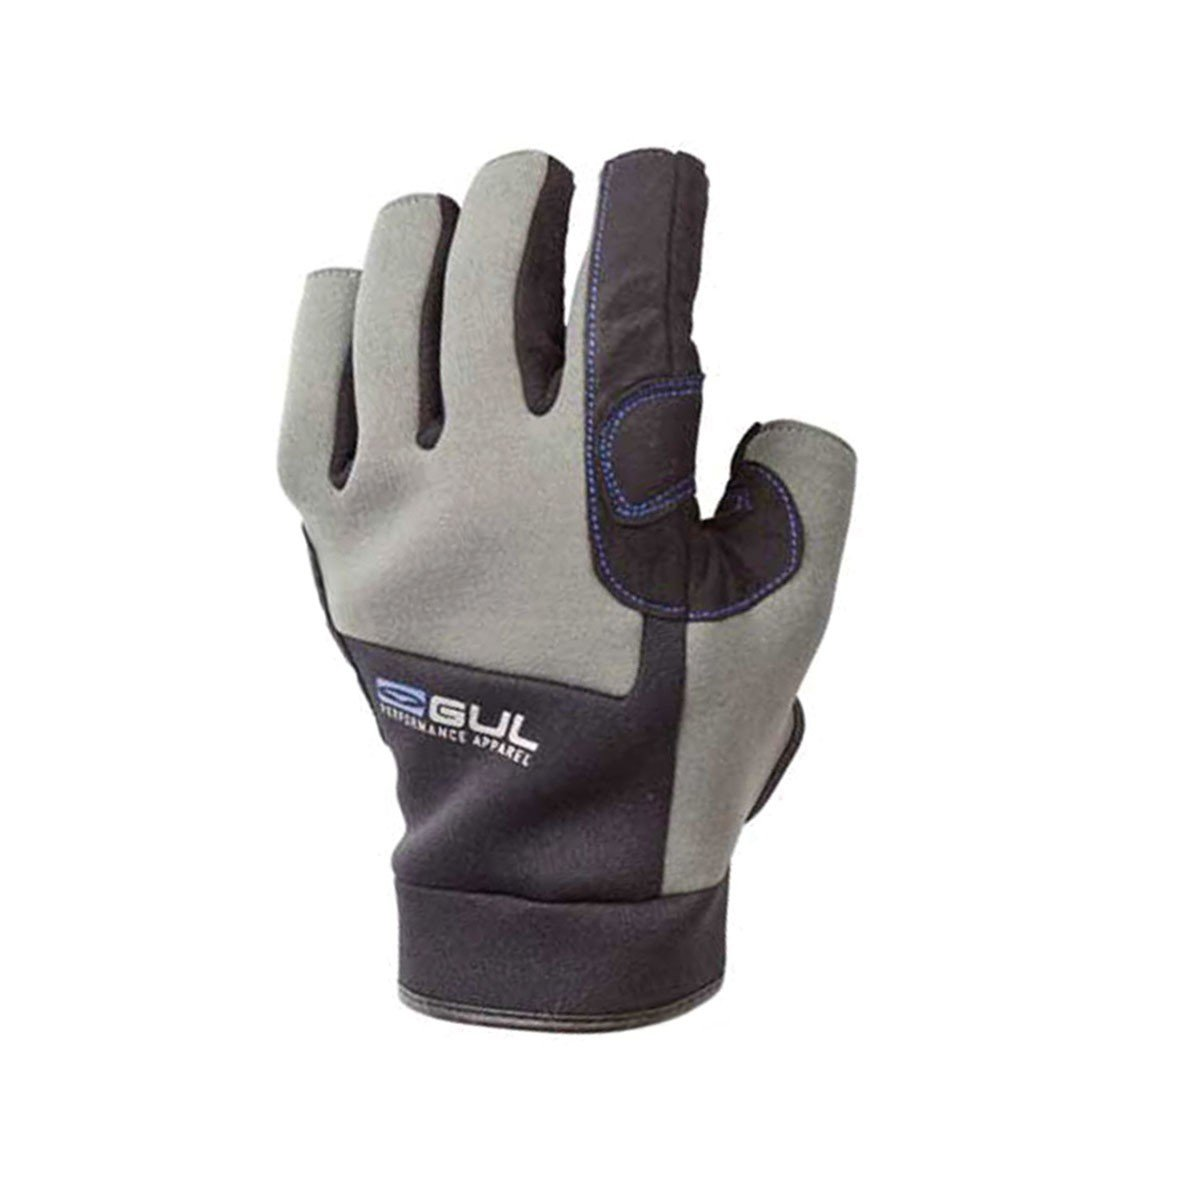 Gul Neoprene Short Finger Winter Sailing Glove   Gl1242-A3